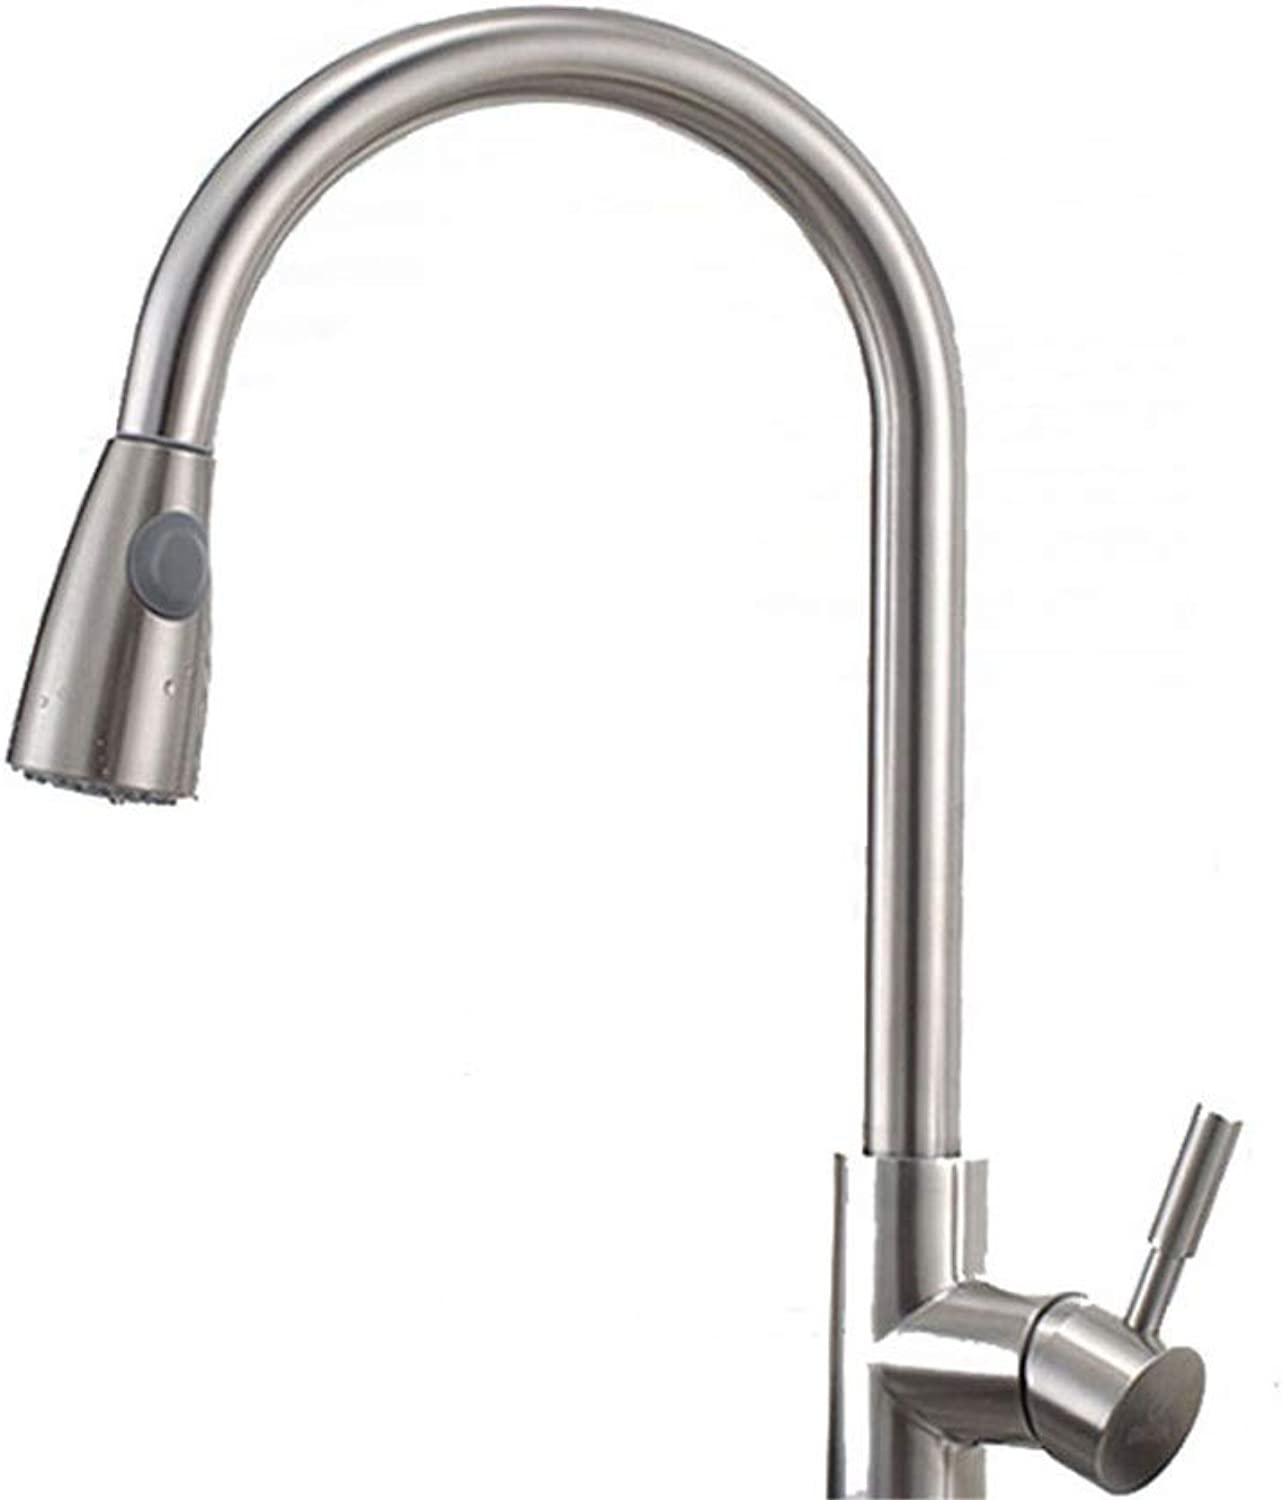 304 Stainless Steel Kitchen Pull-Out tap hot and Cold wash Basin Telescopic tap, Sliver,25  41cm